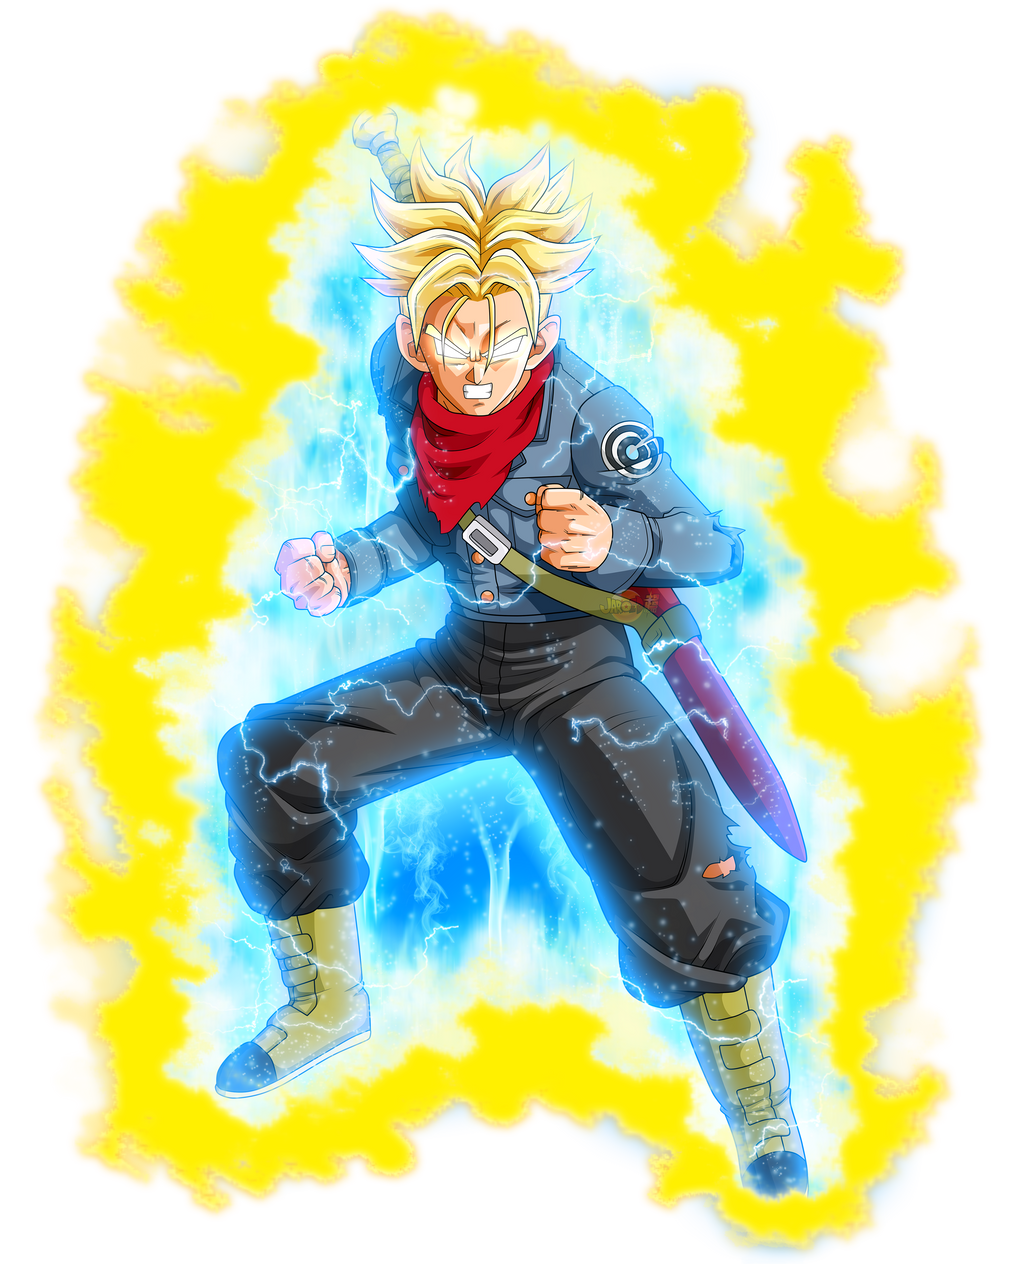 Future Trunks New Form v2 by rmehedi on DeviantArt